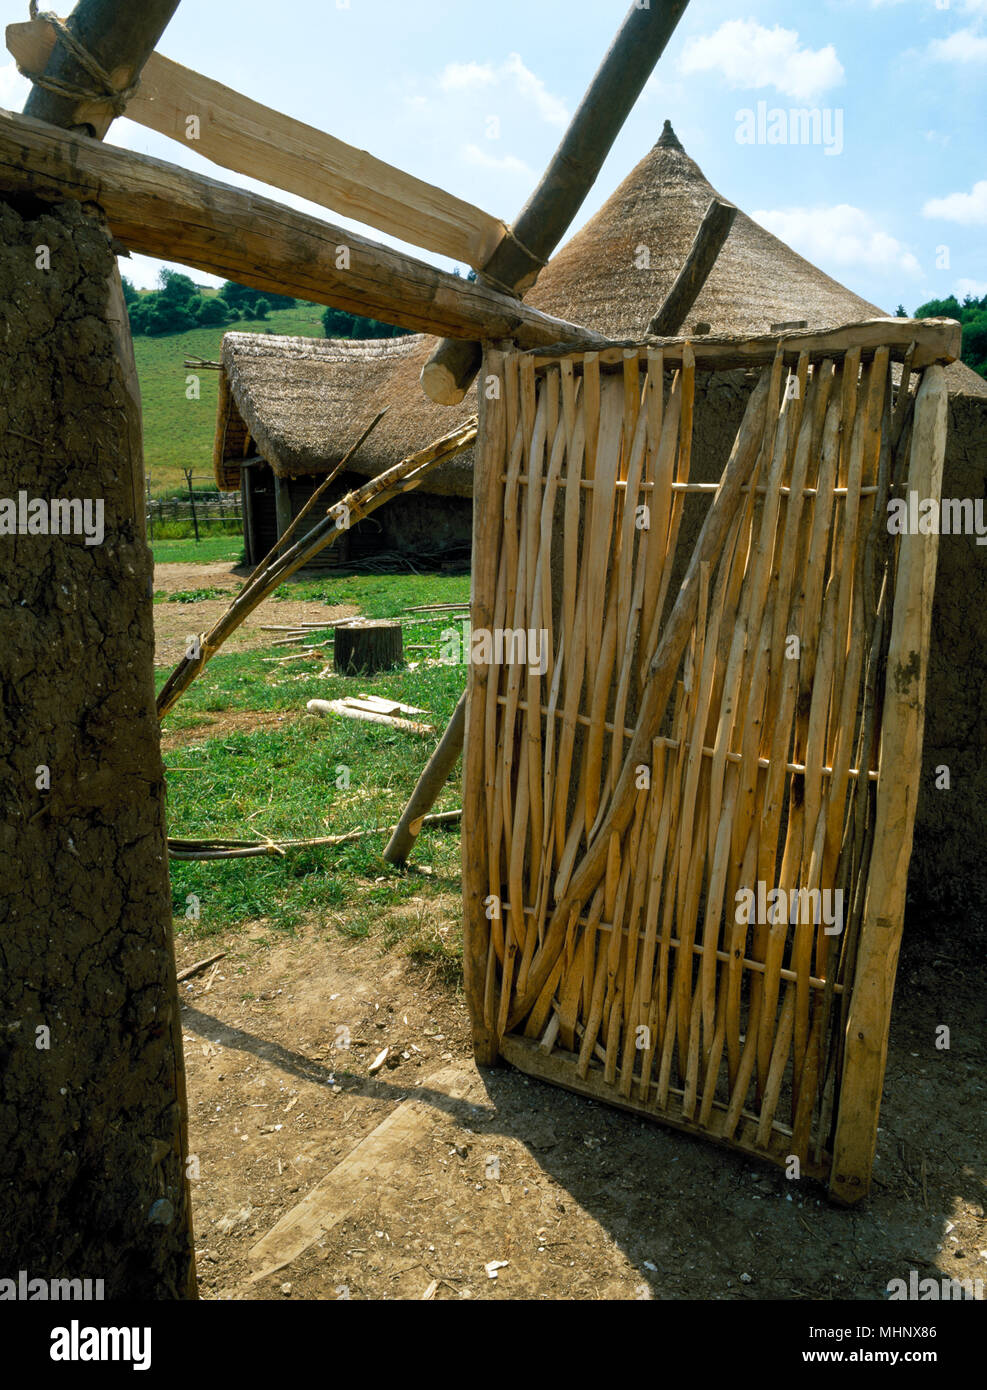 New pivoted door made from hazel hurdle fixed into frame of reconstructed Glastonbury Lake Village house, Butser Ancient Farm, Hampshire, England. - Stock Image